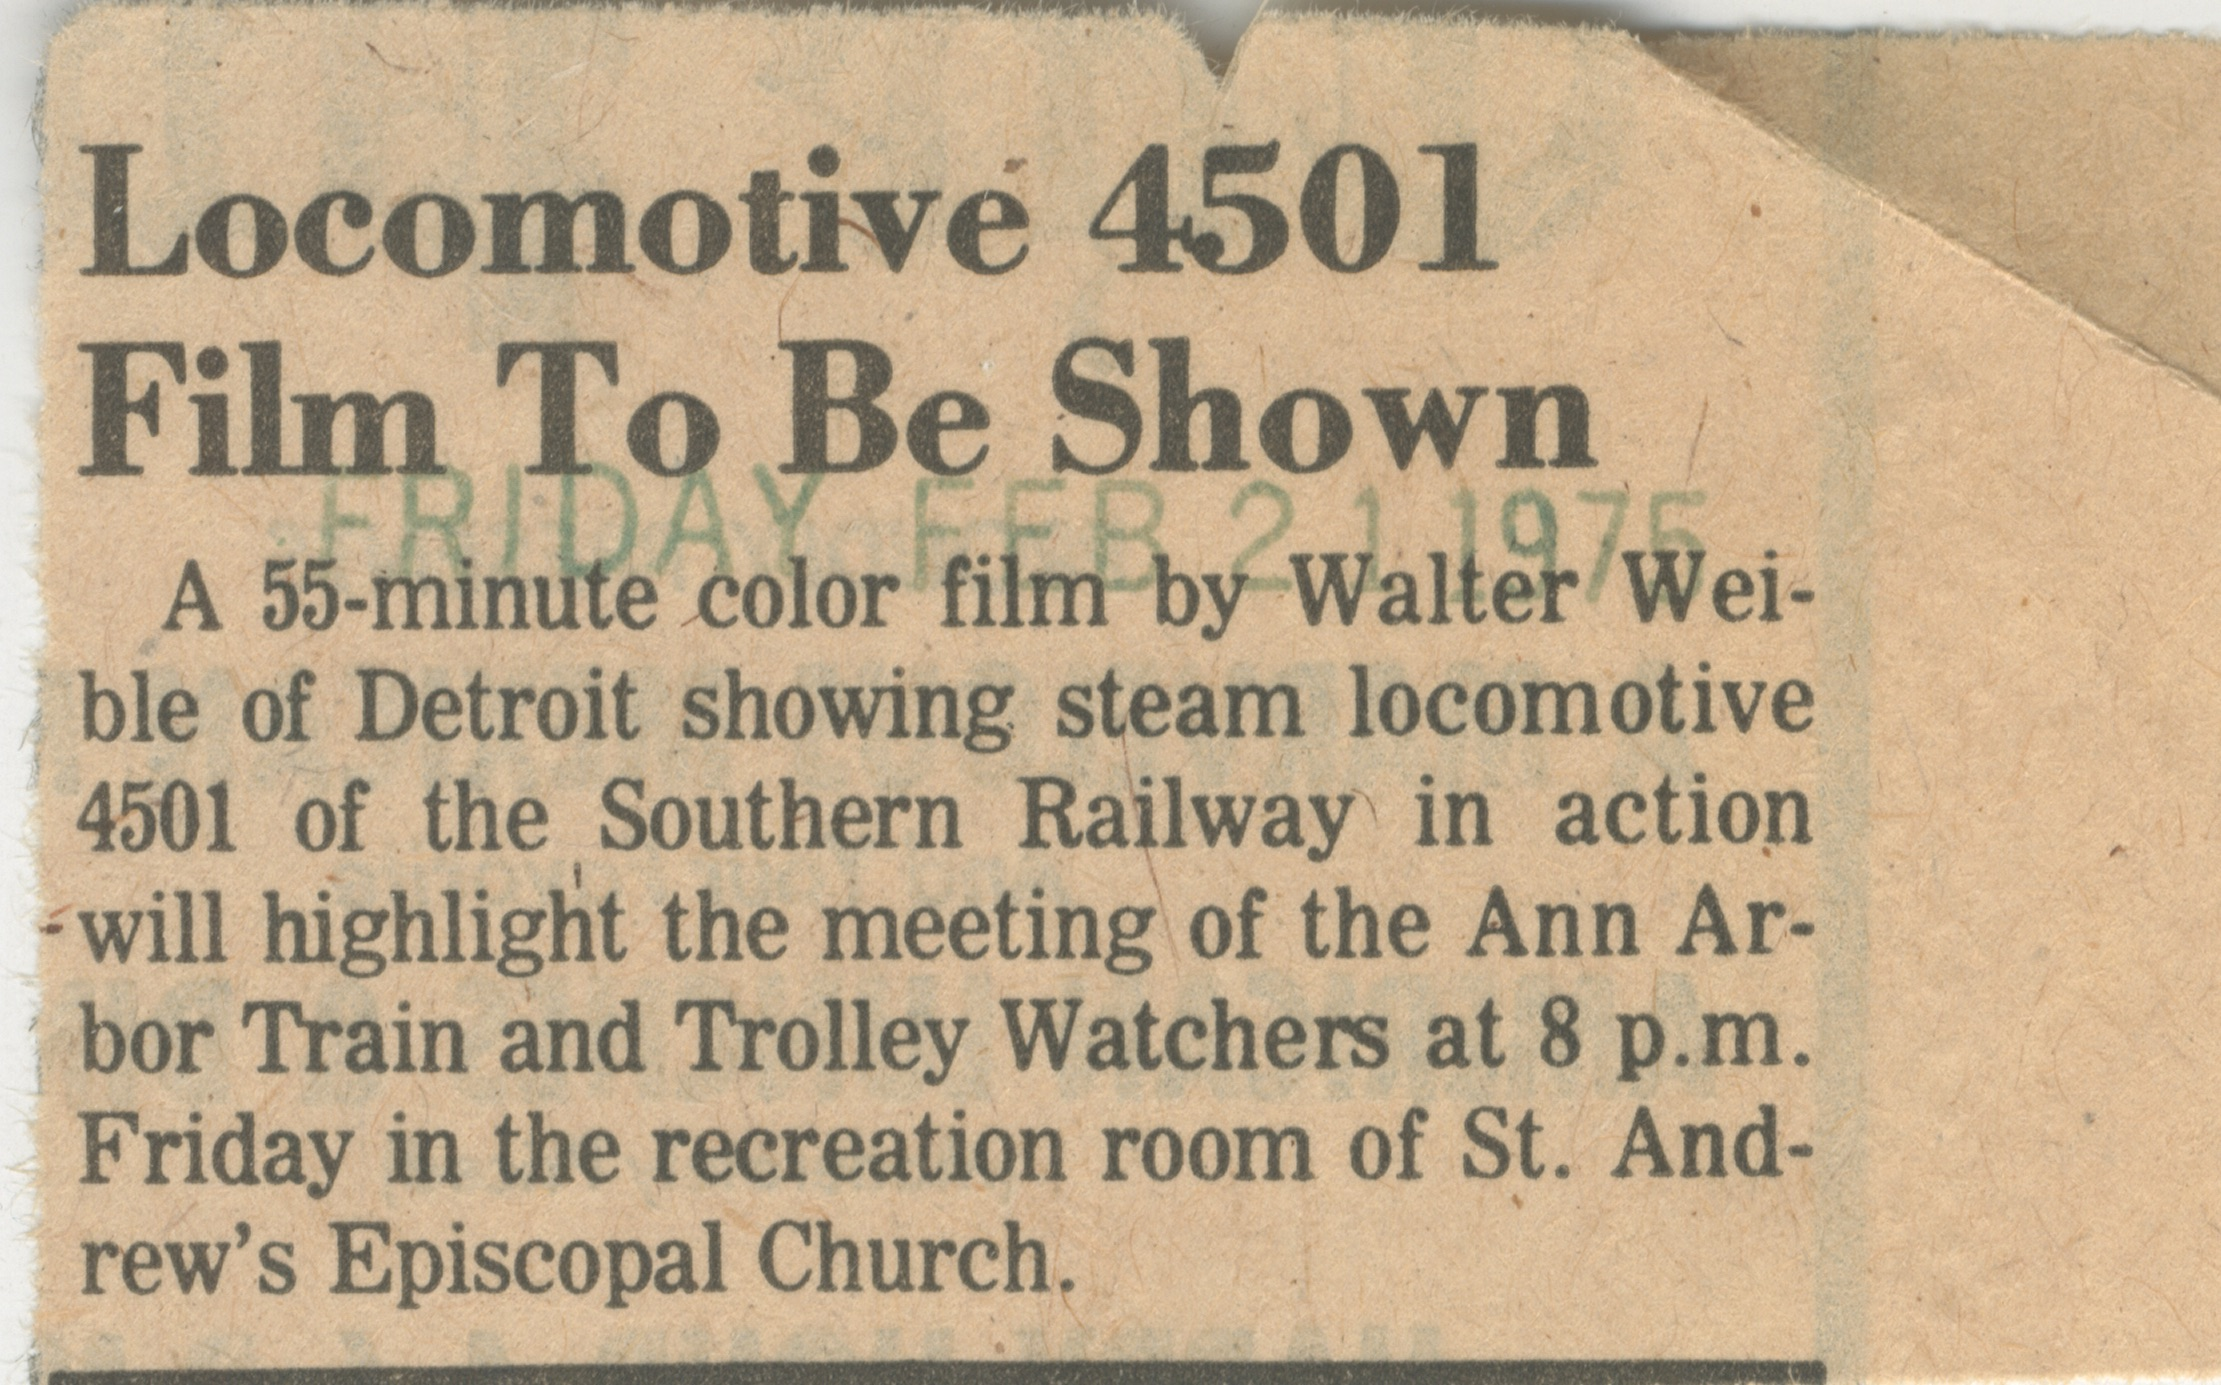 Locomotive 4501 Film To Be Shown image